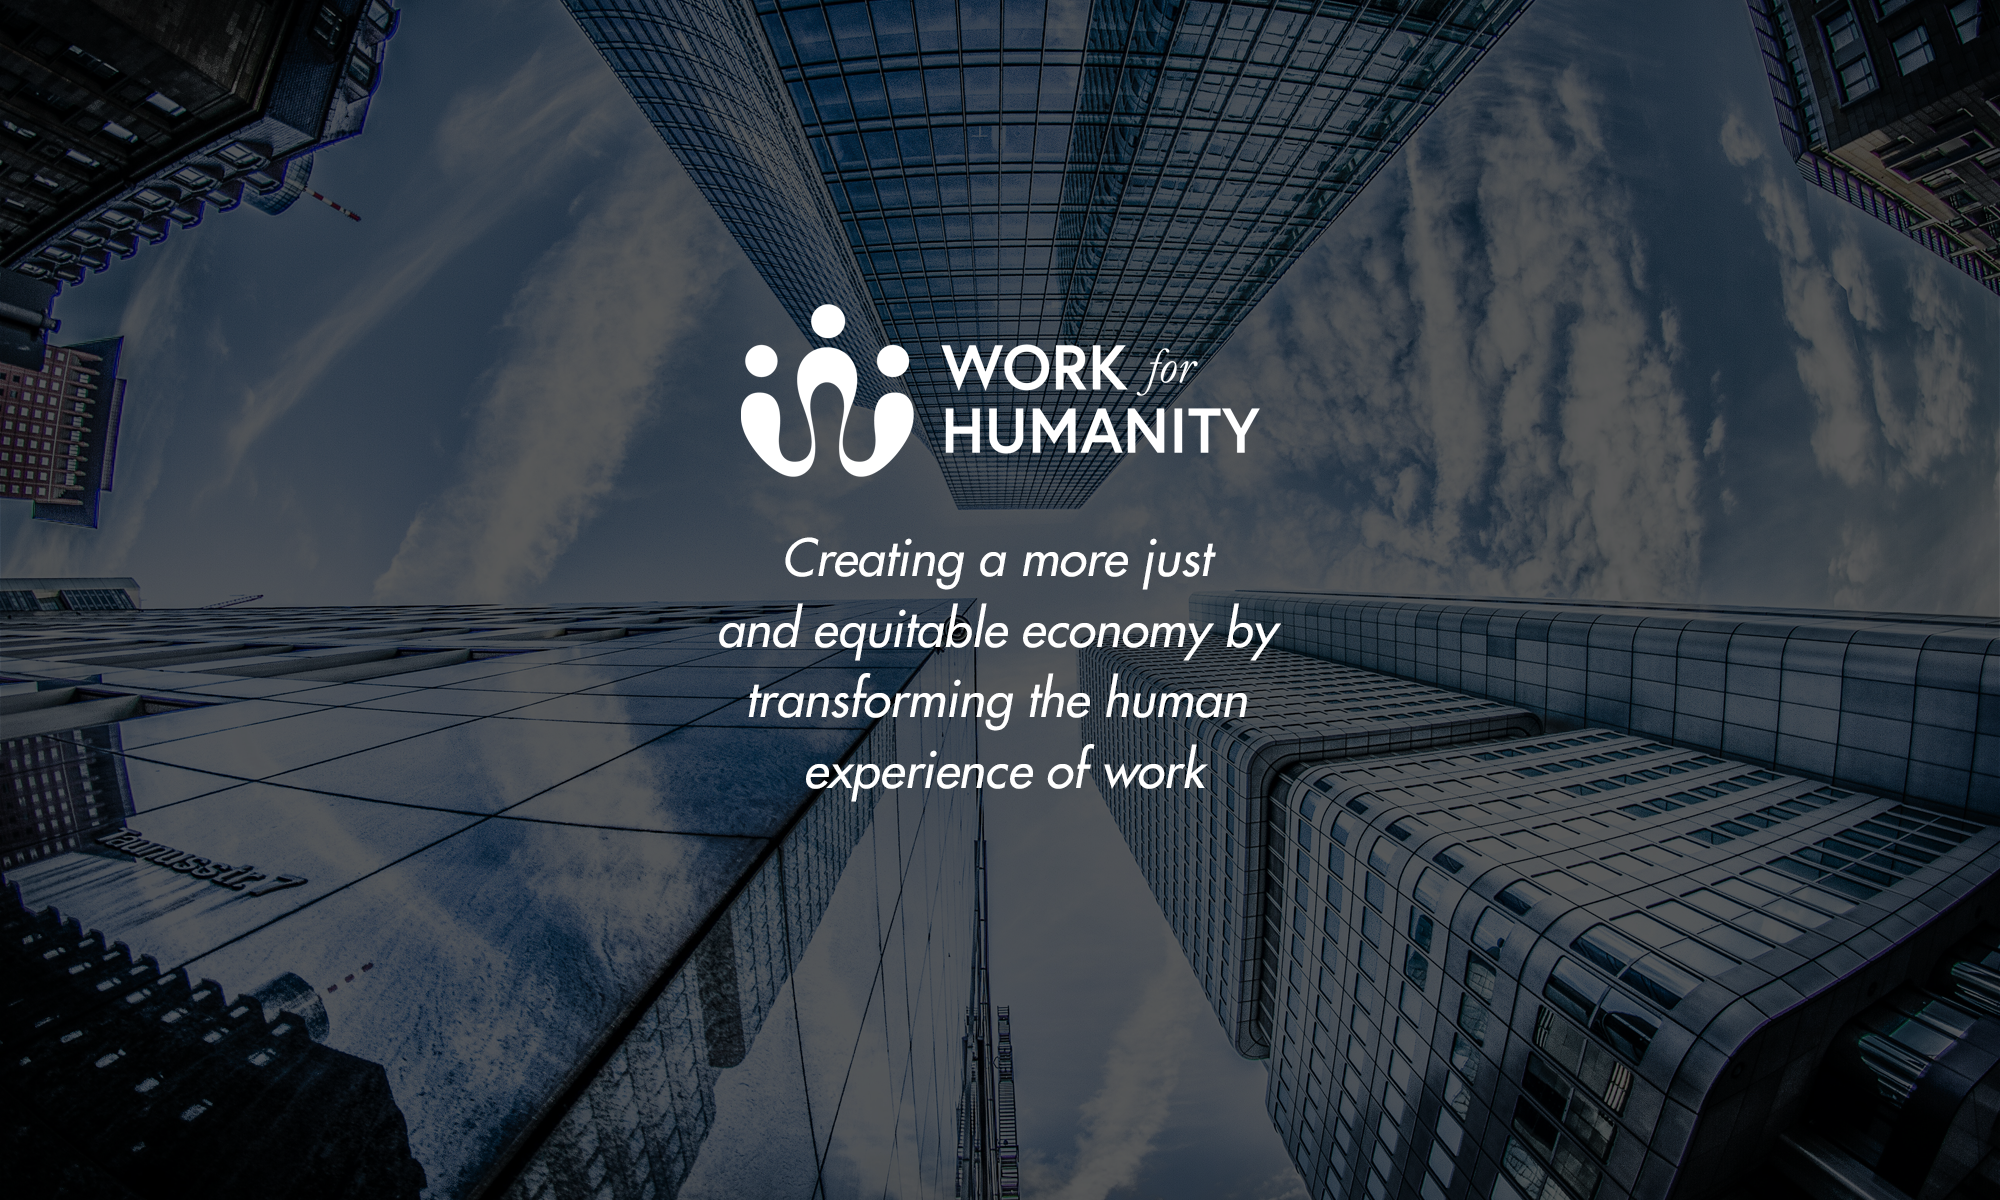 Work for Humanity